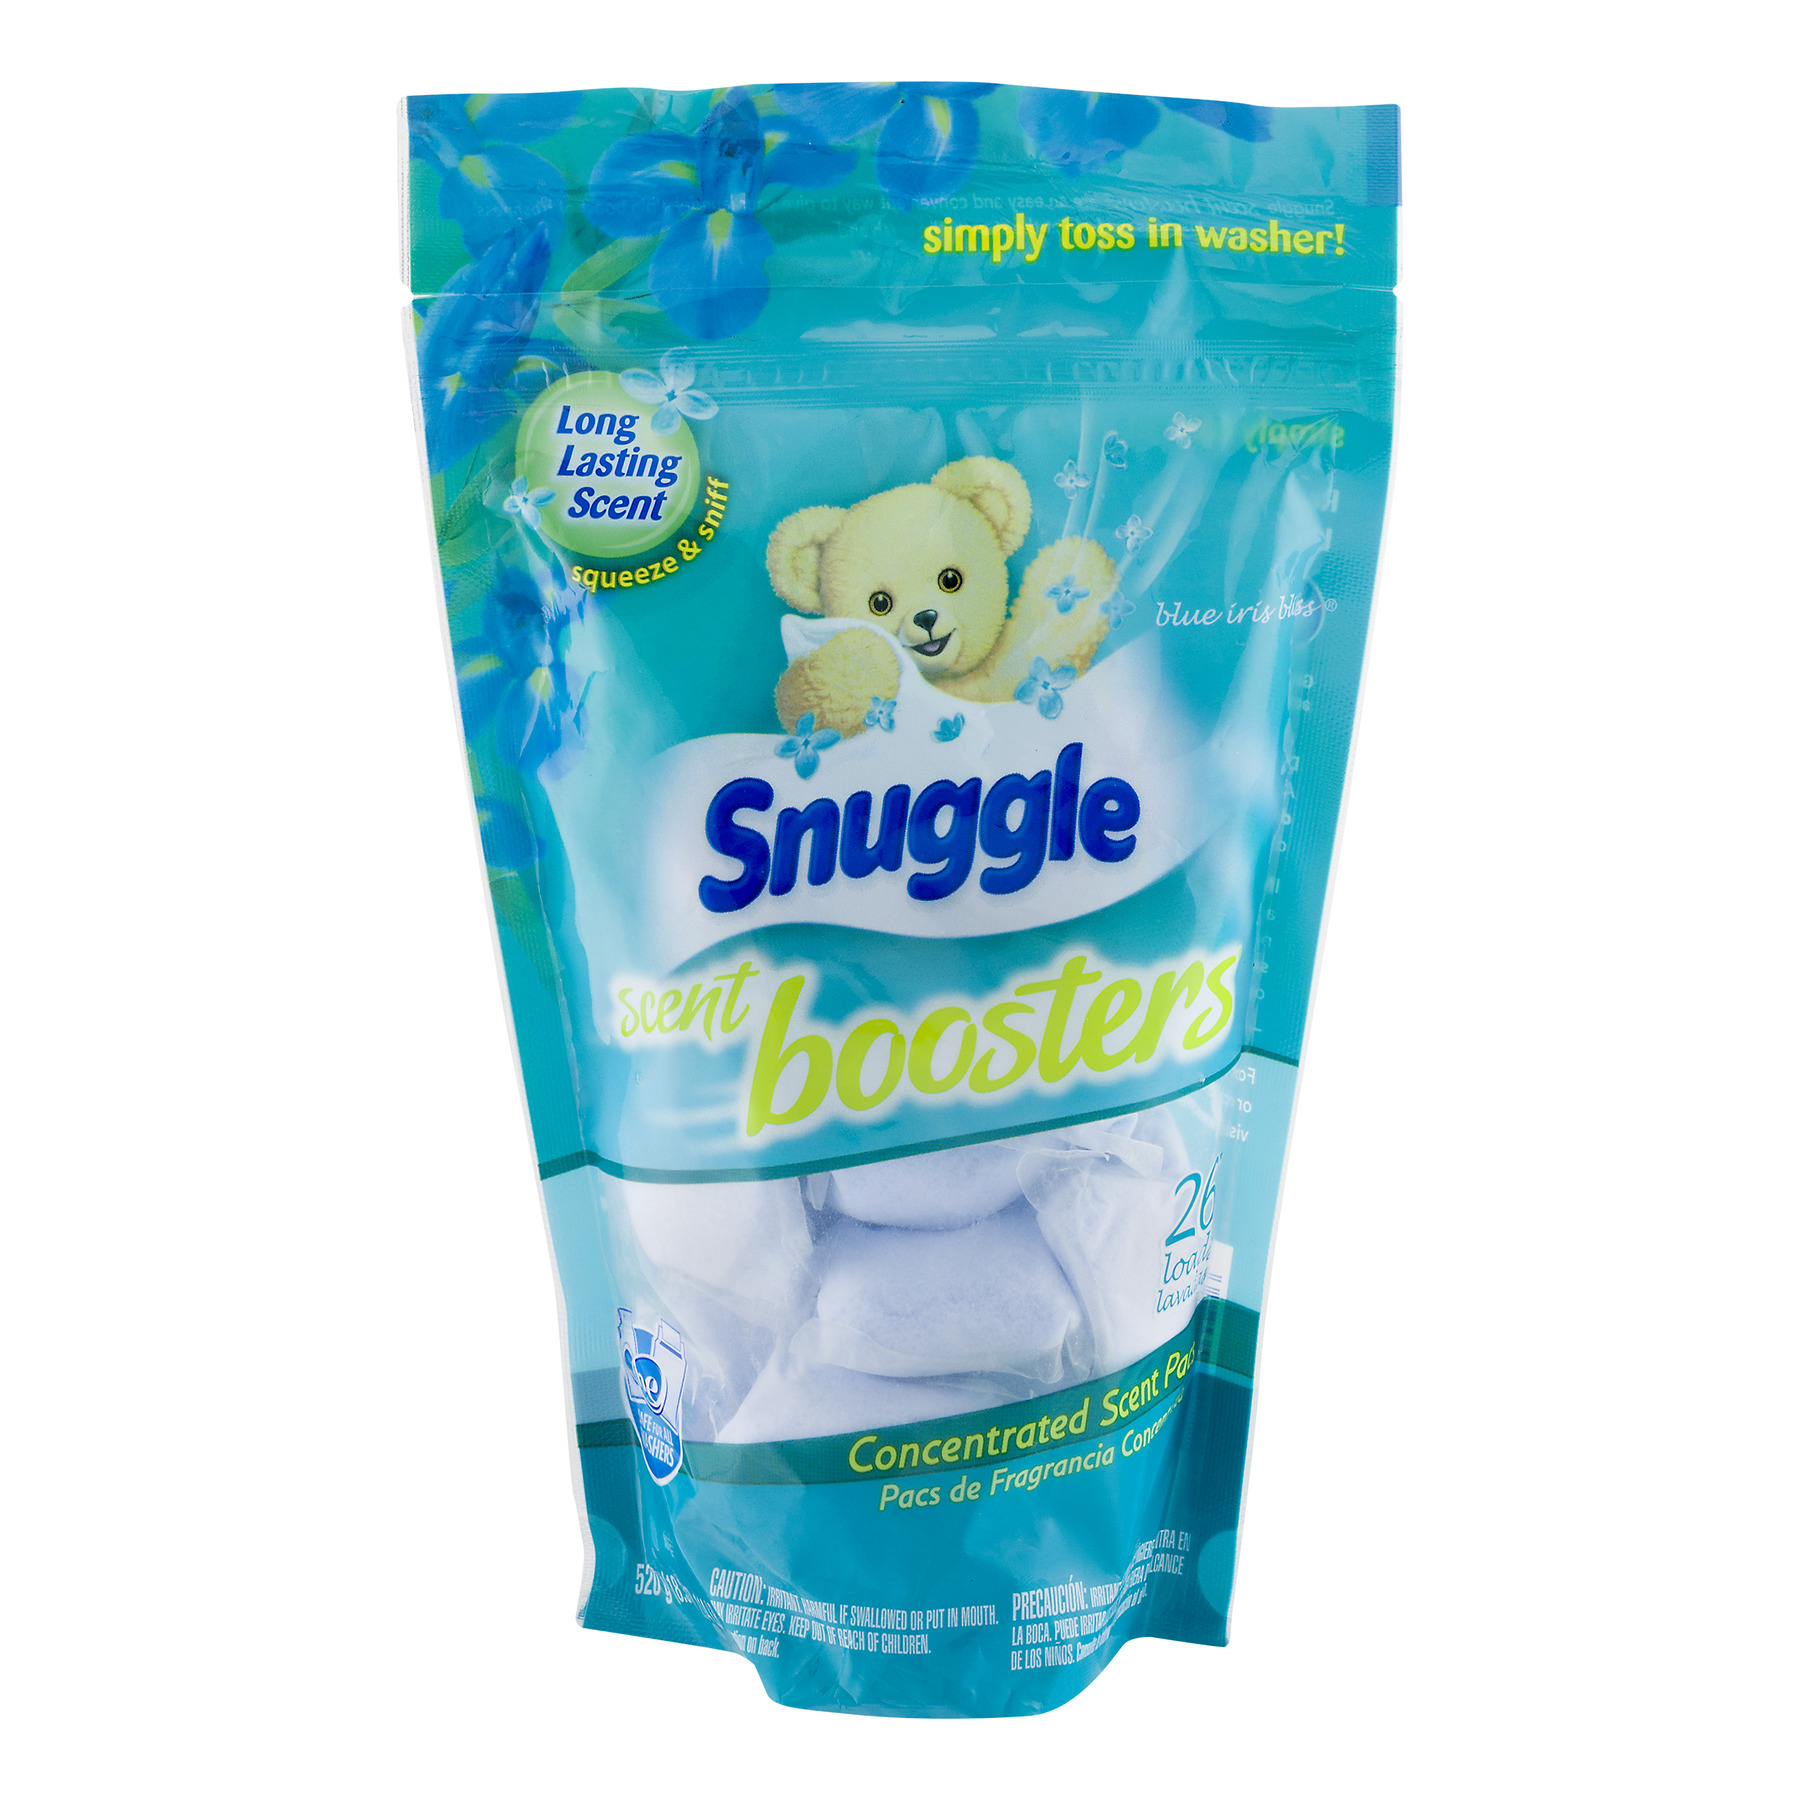 Snuggle Scent Boosters Blue Iris Bliss Concentrated Scent Pacs, 26 loads, 1.14 lb